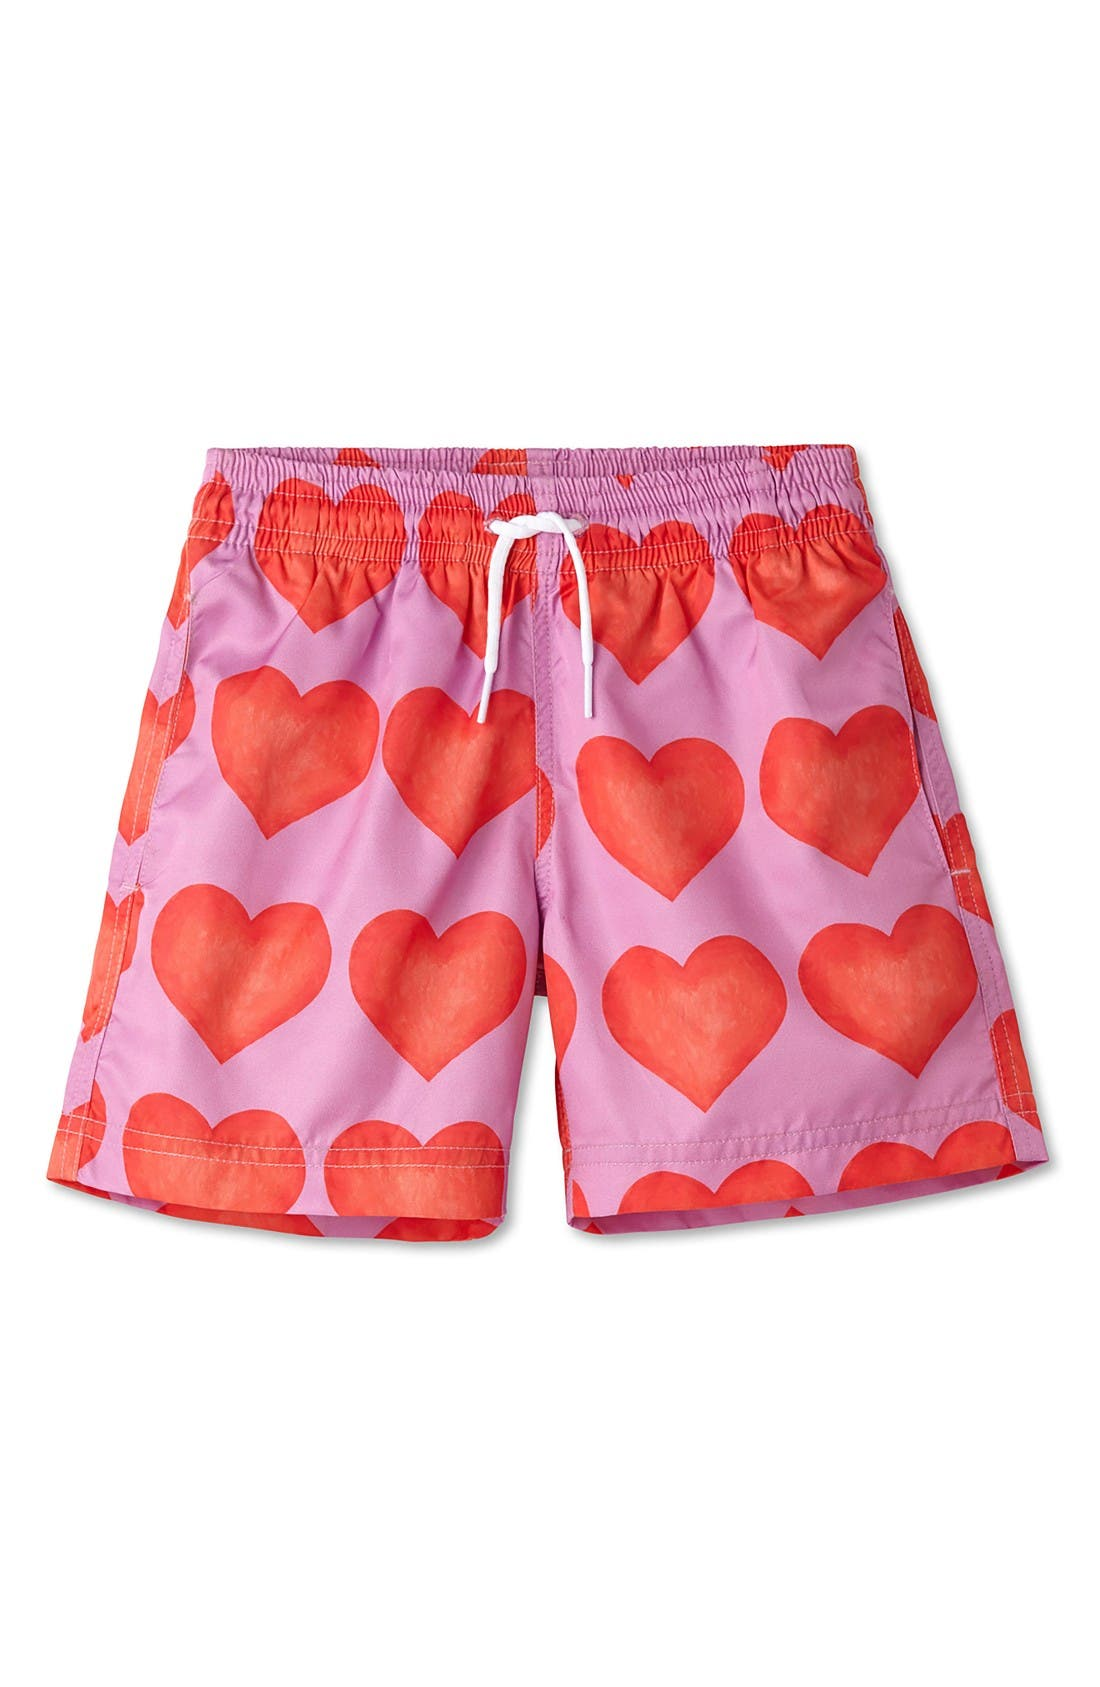 Main Image - Stella Cove Heart Print Swim Trunks (Toddler Boys & Little Boys)